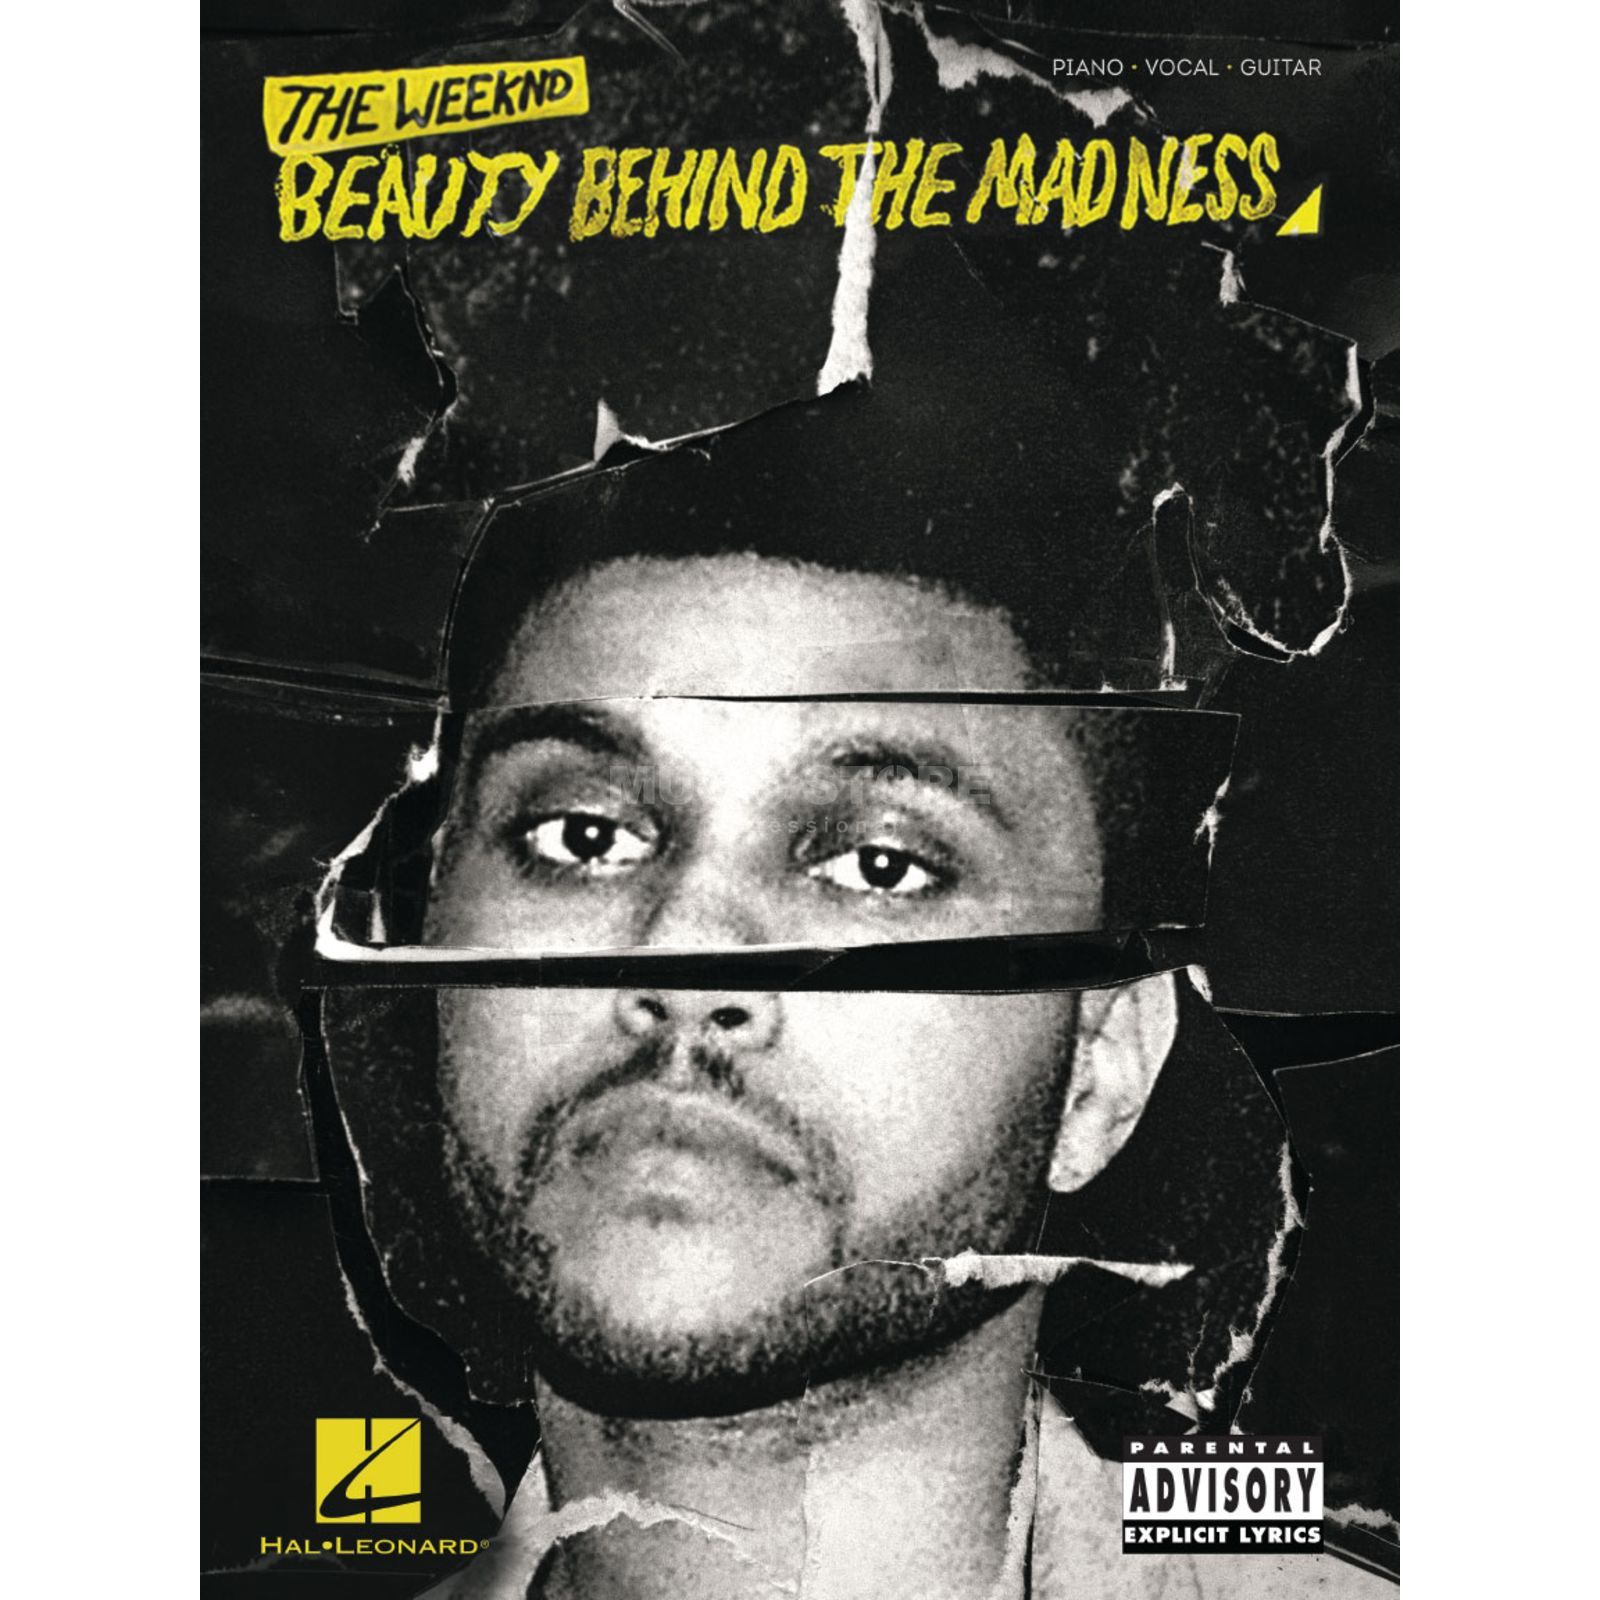 Hal Leonard The Weeknd: Beauty Behind The Madness Изображение товара